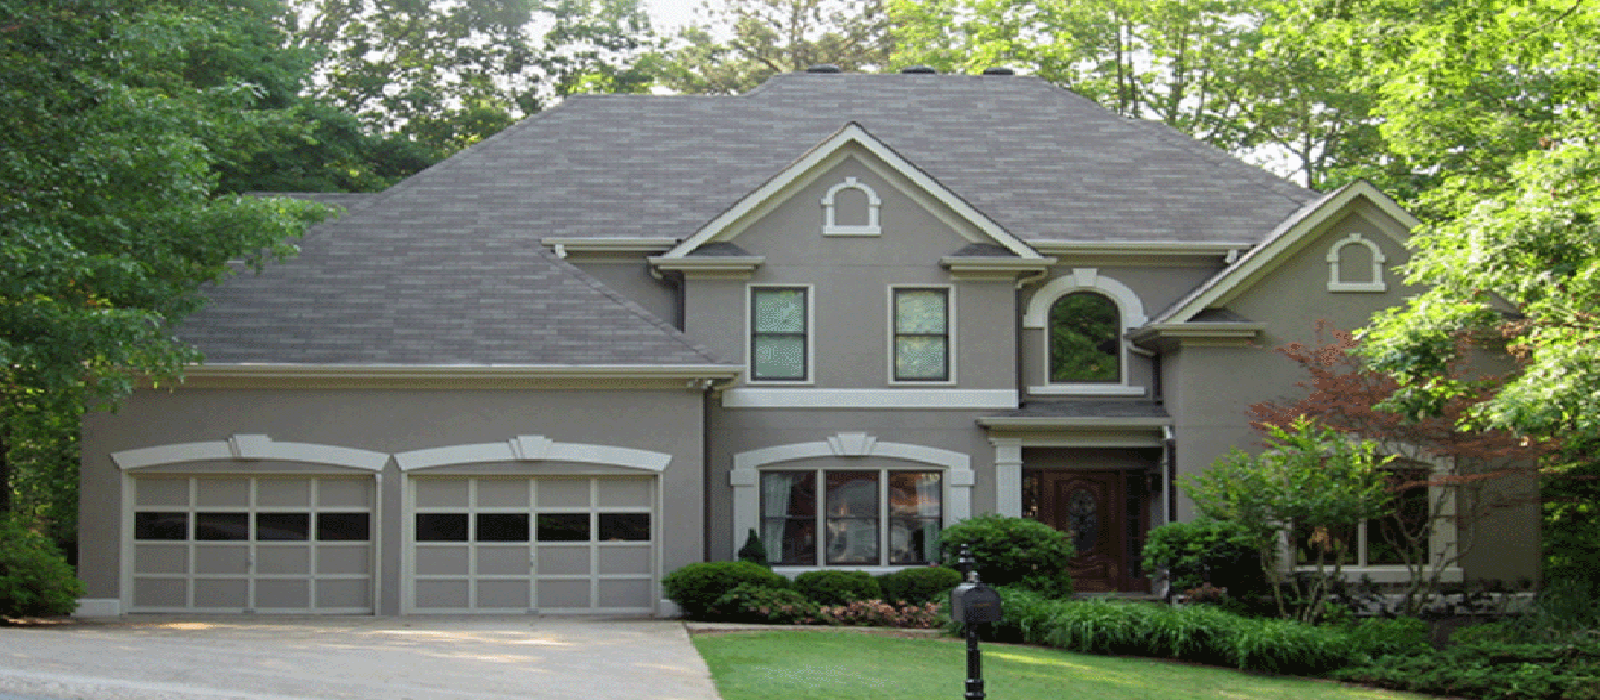 Painters overland park ks exterior house painting contractors for Exterior house finishes